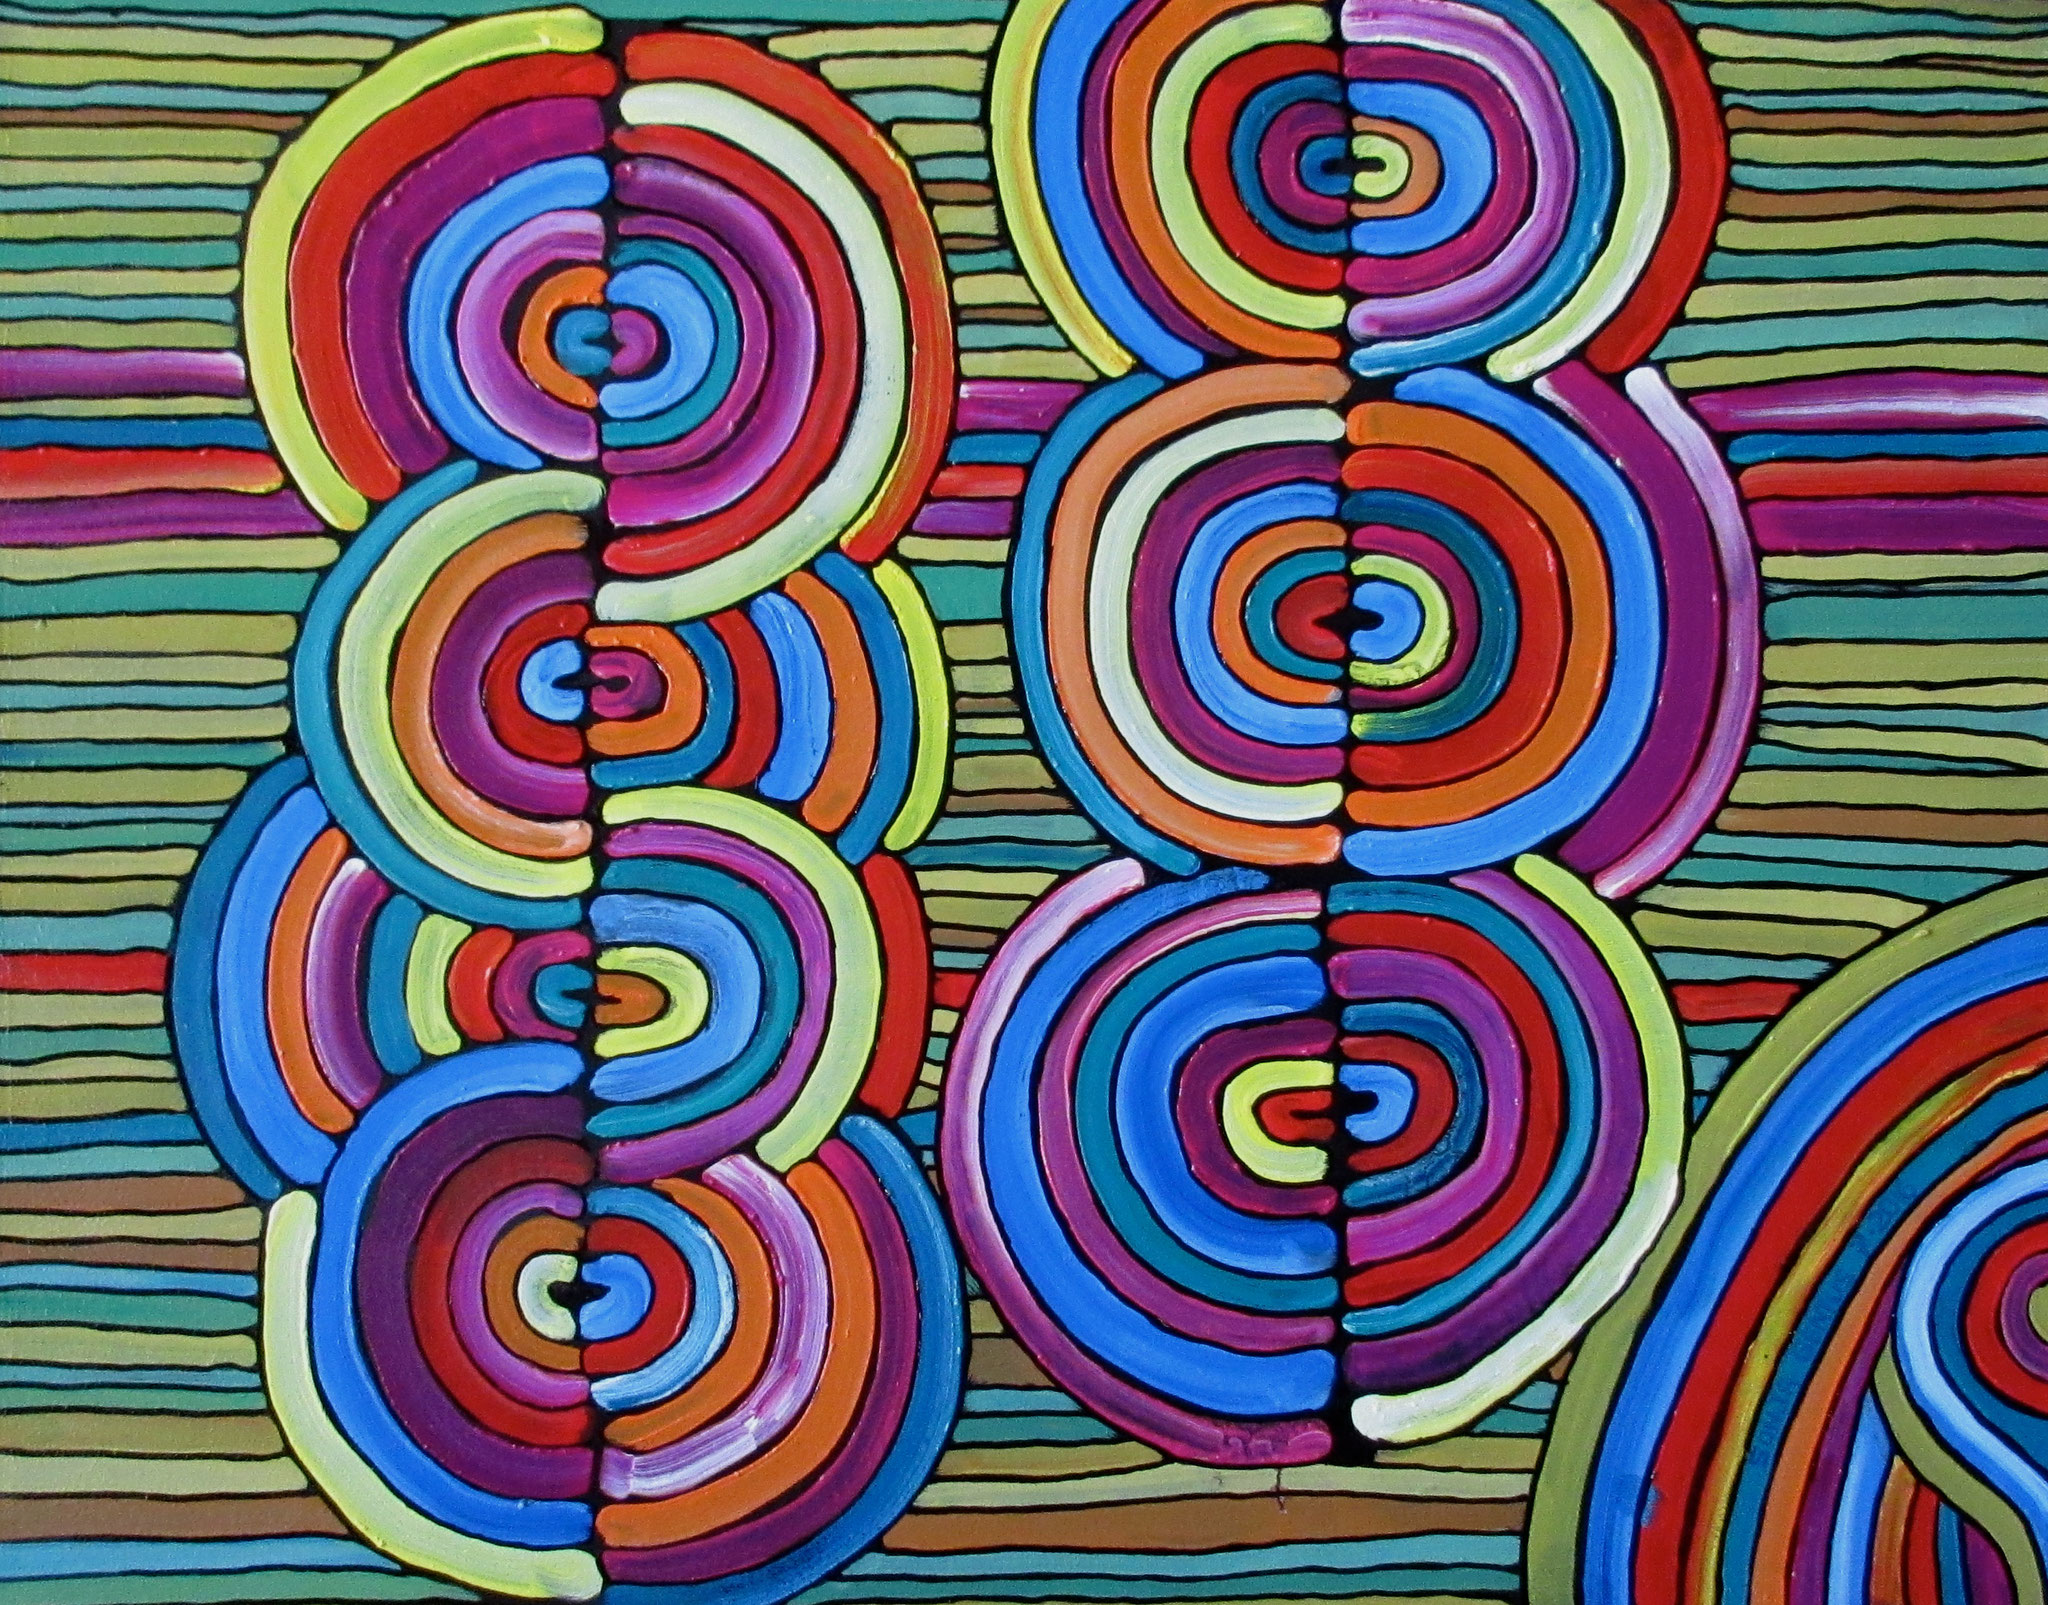 Oil on canvas 16x20, July 2016 inspired by Aboriginal Art - (2)